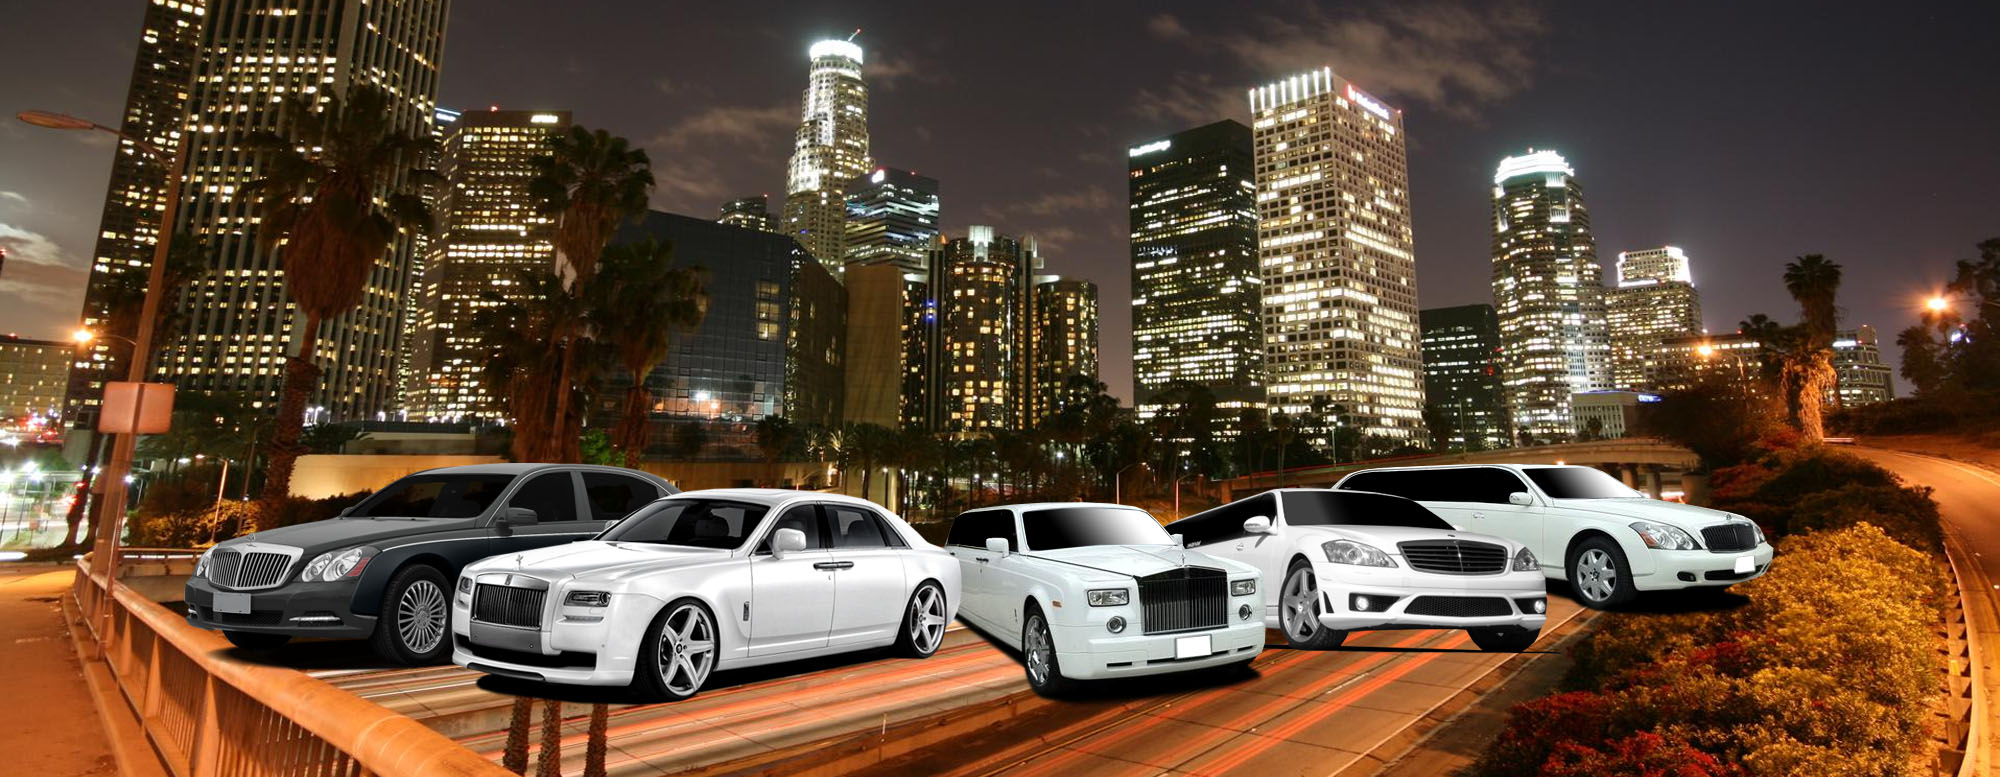 Affordable Limo Rentals